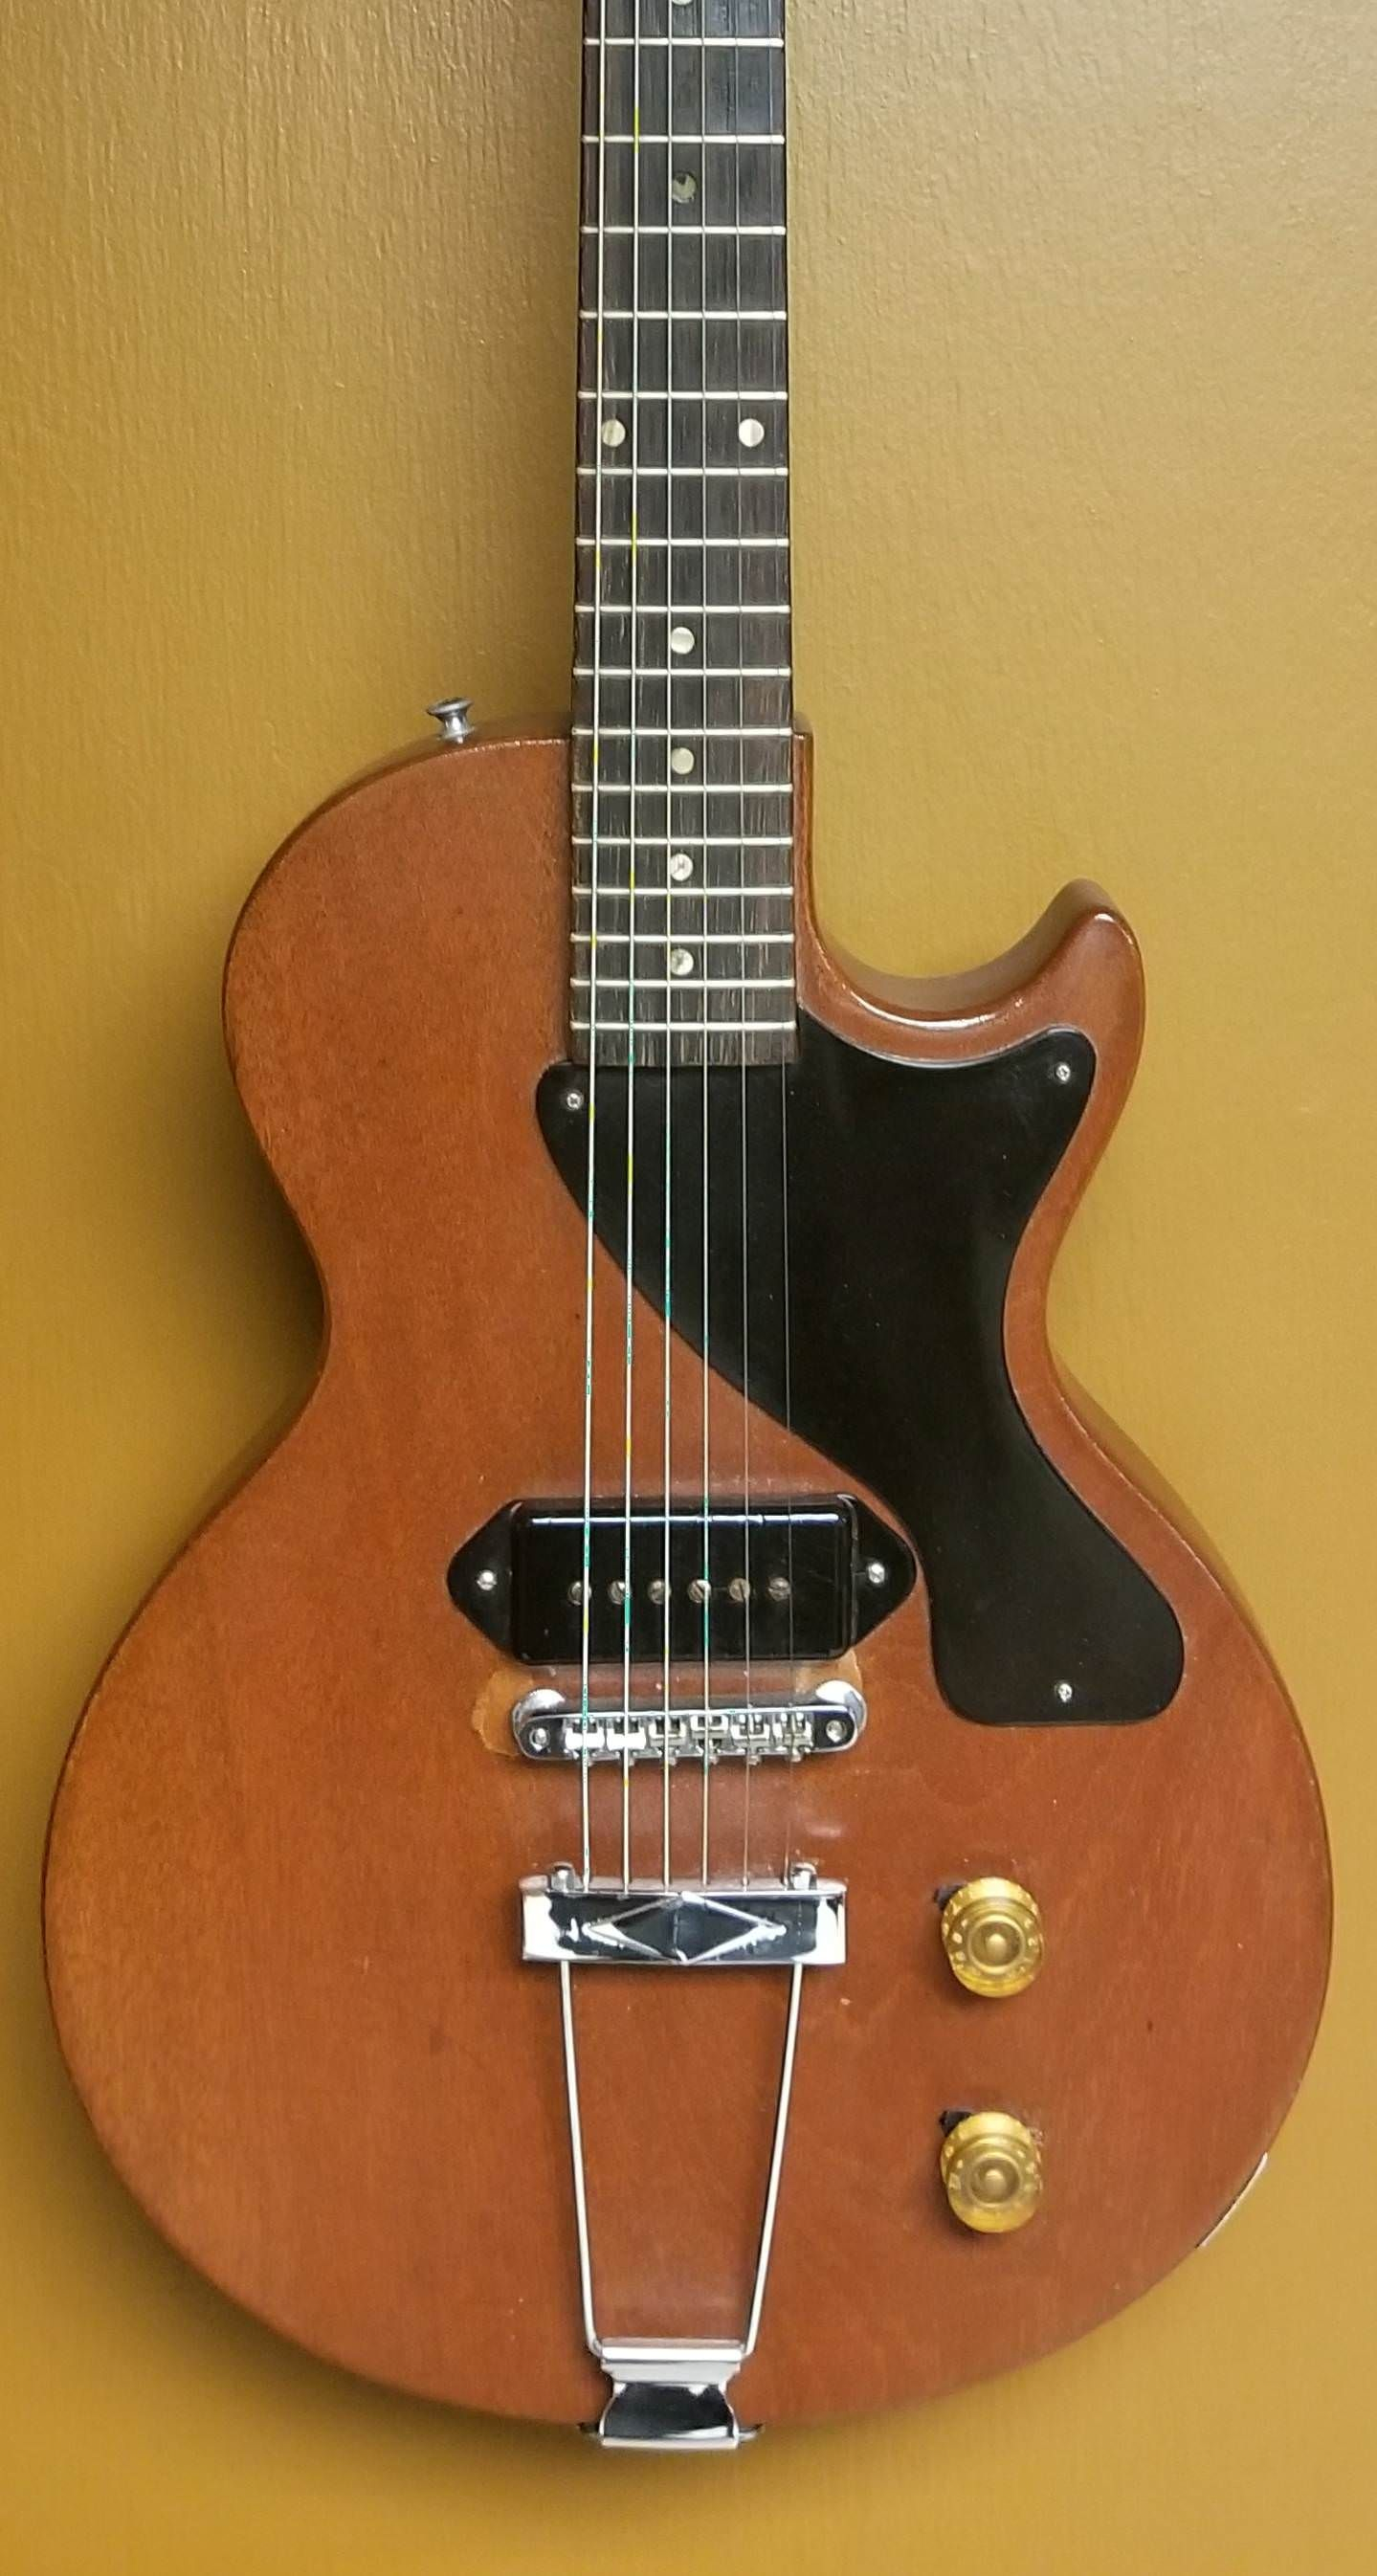 1955 Gibson Les Paul Junior (with vintage bridge and tail piece